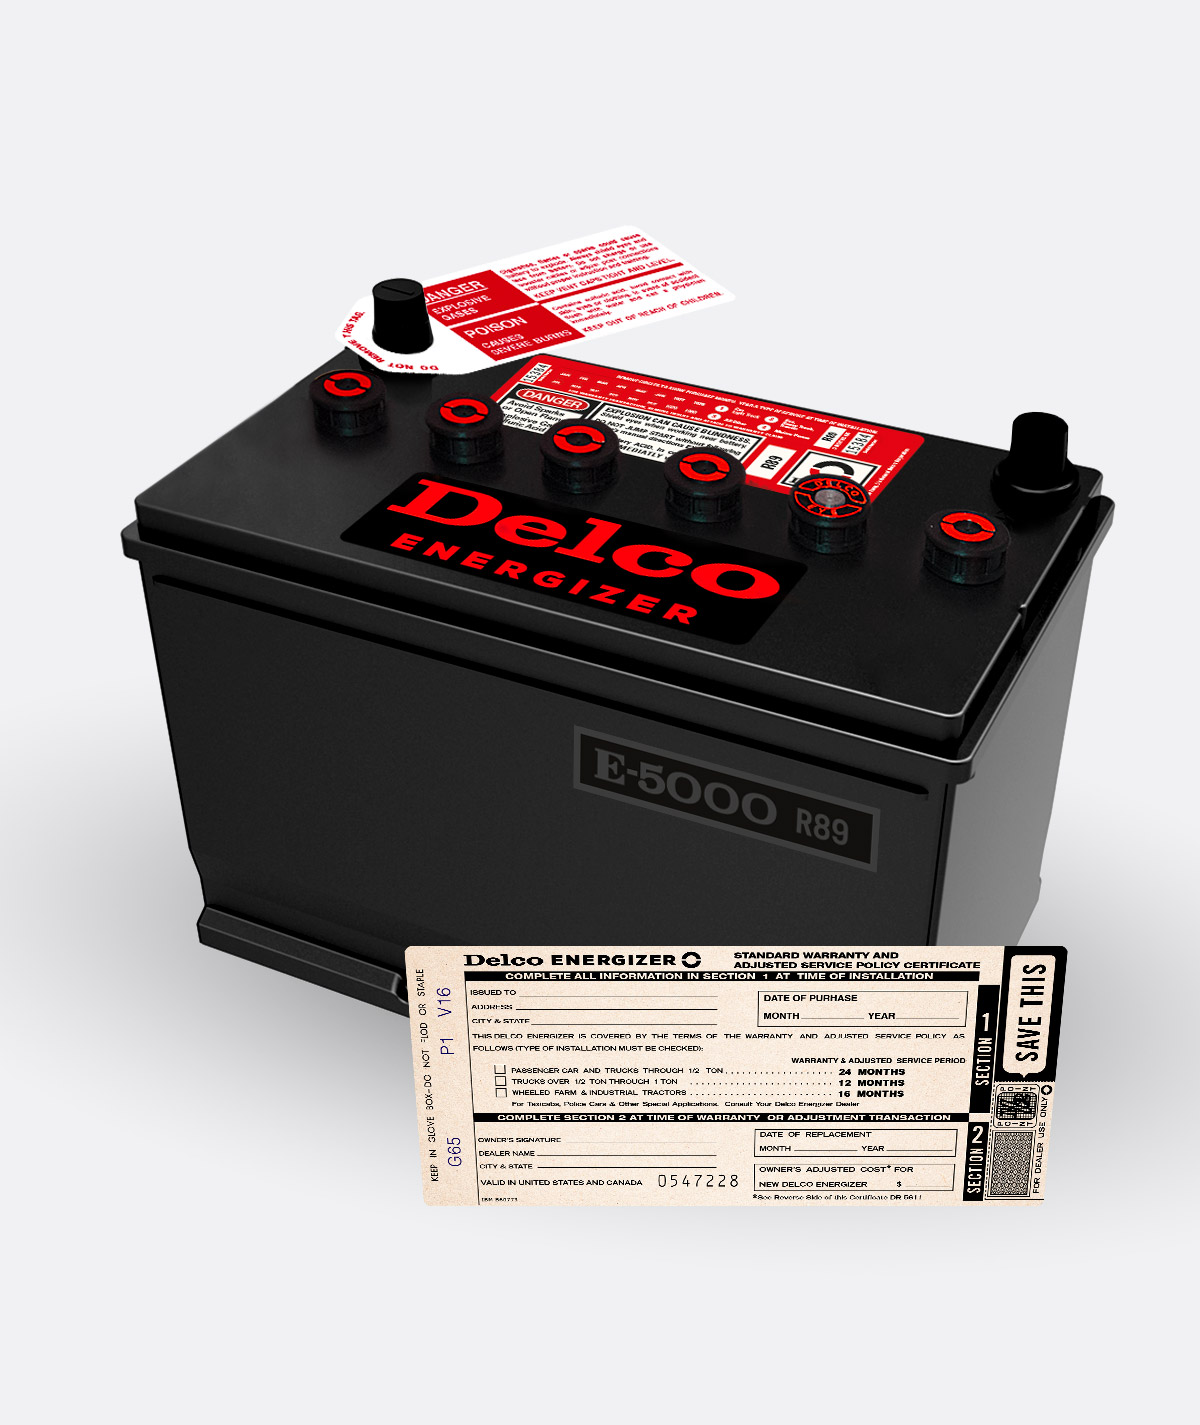 Delco Energizer Battery R89 Red Caps kit